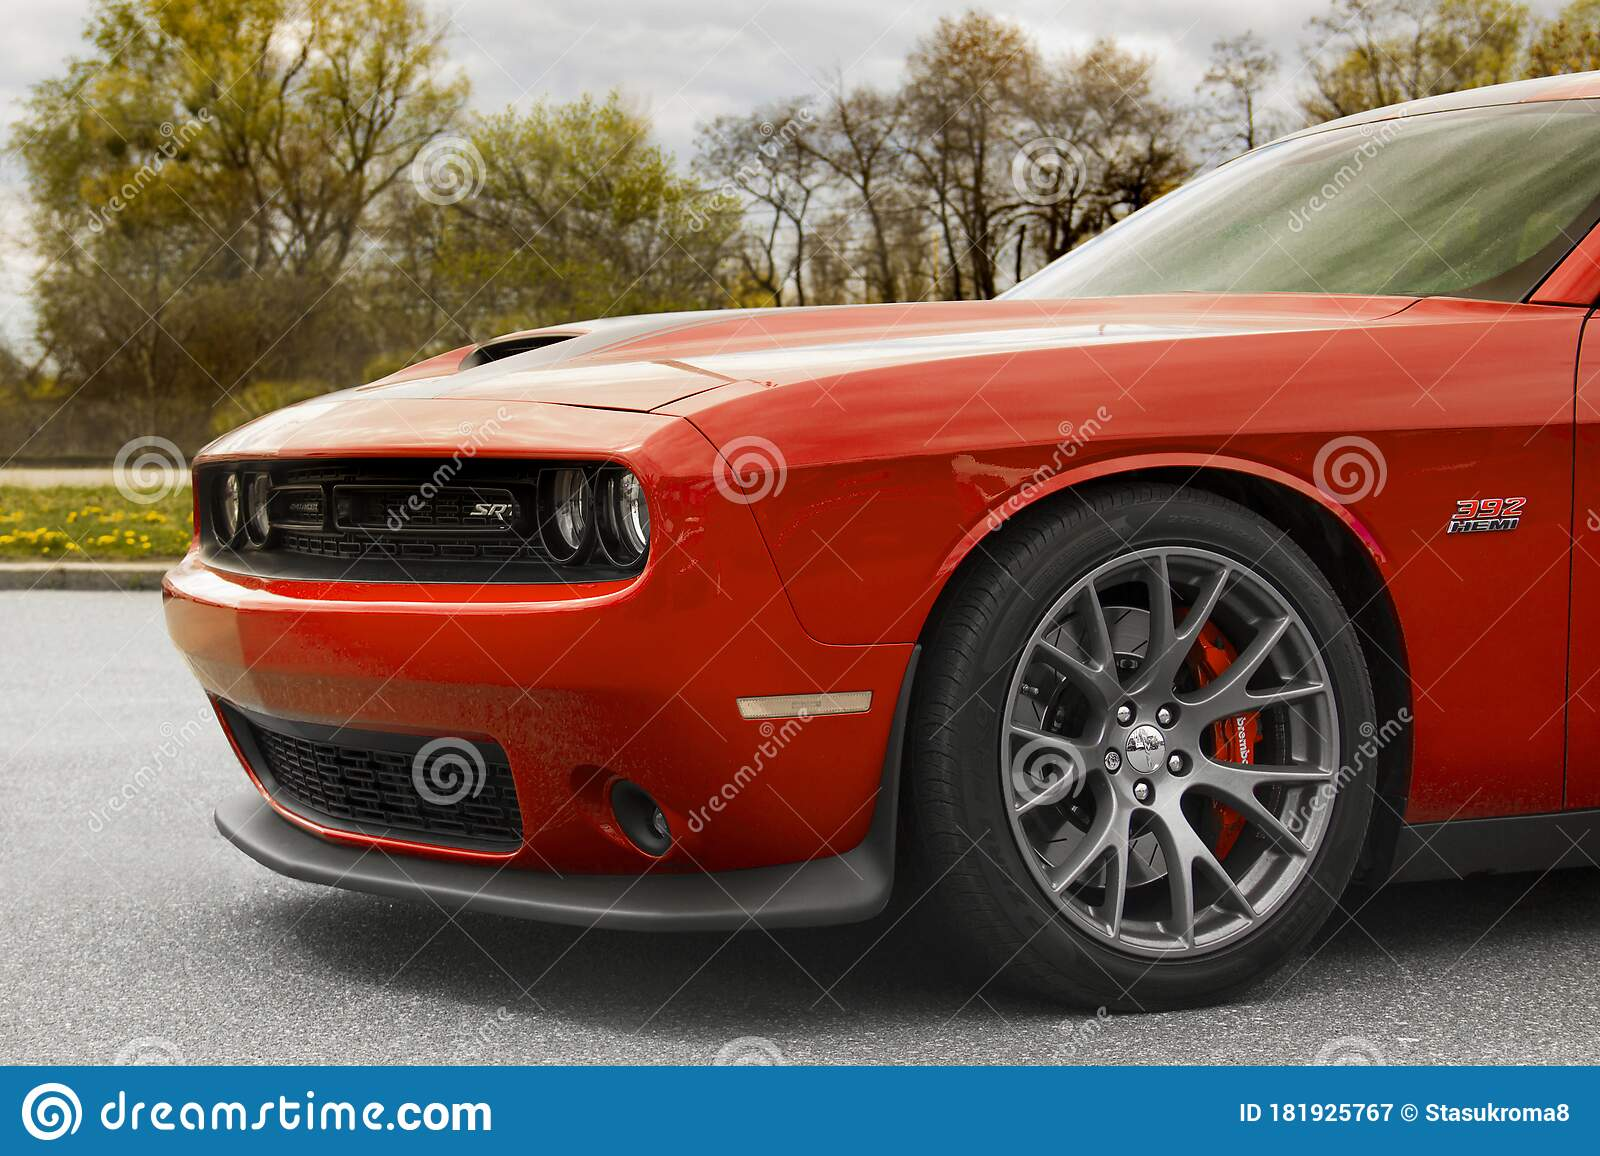 Kiev Ukraine April 21 2020 Muscle Car Dodge Challenger Srt8 392 Hemi On A Background Of Trees Red Car Editorial Photography Image Of Event Exhaust 181925767